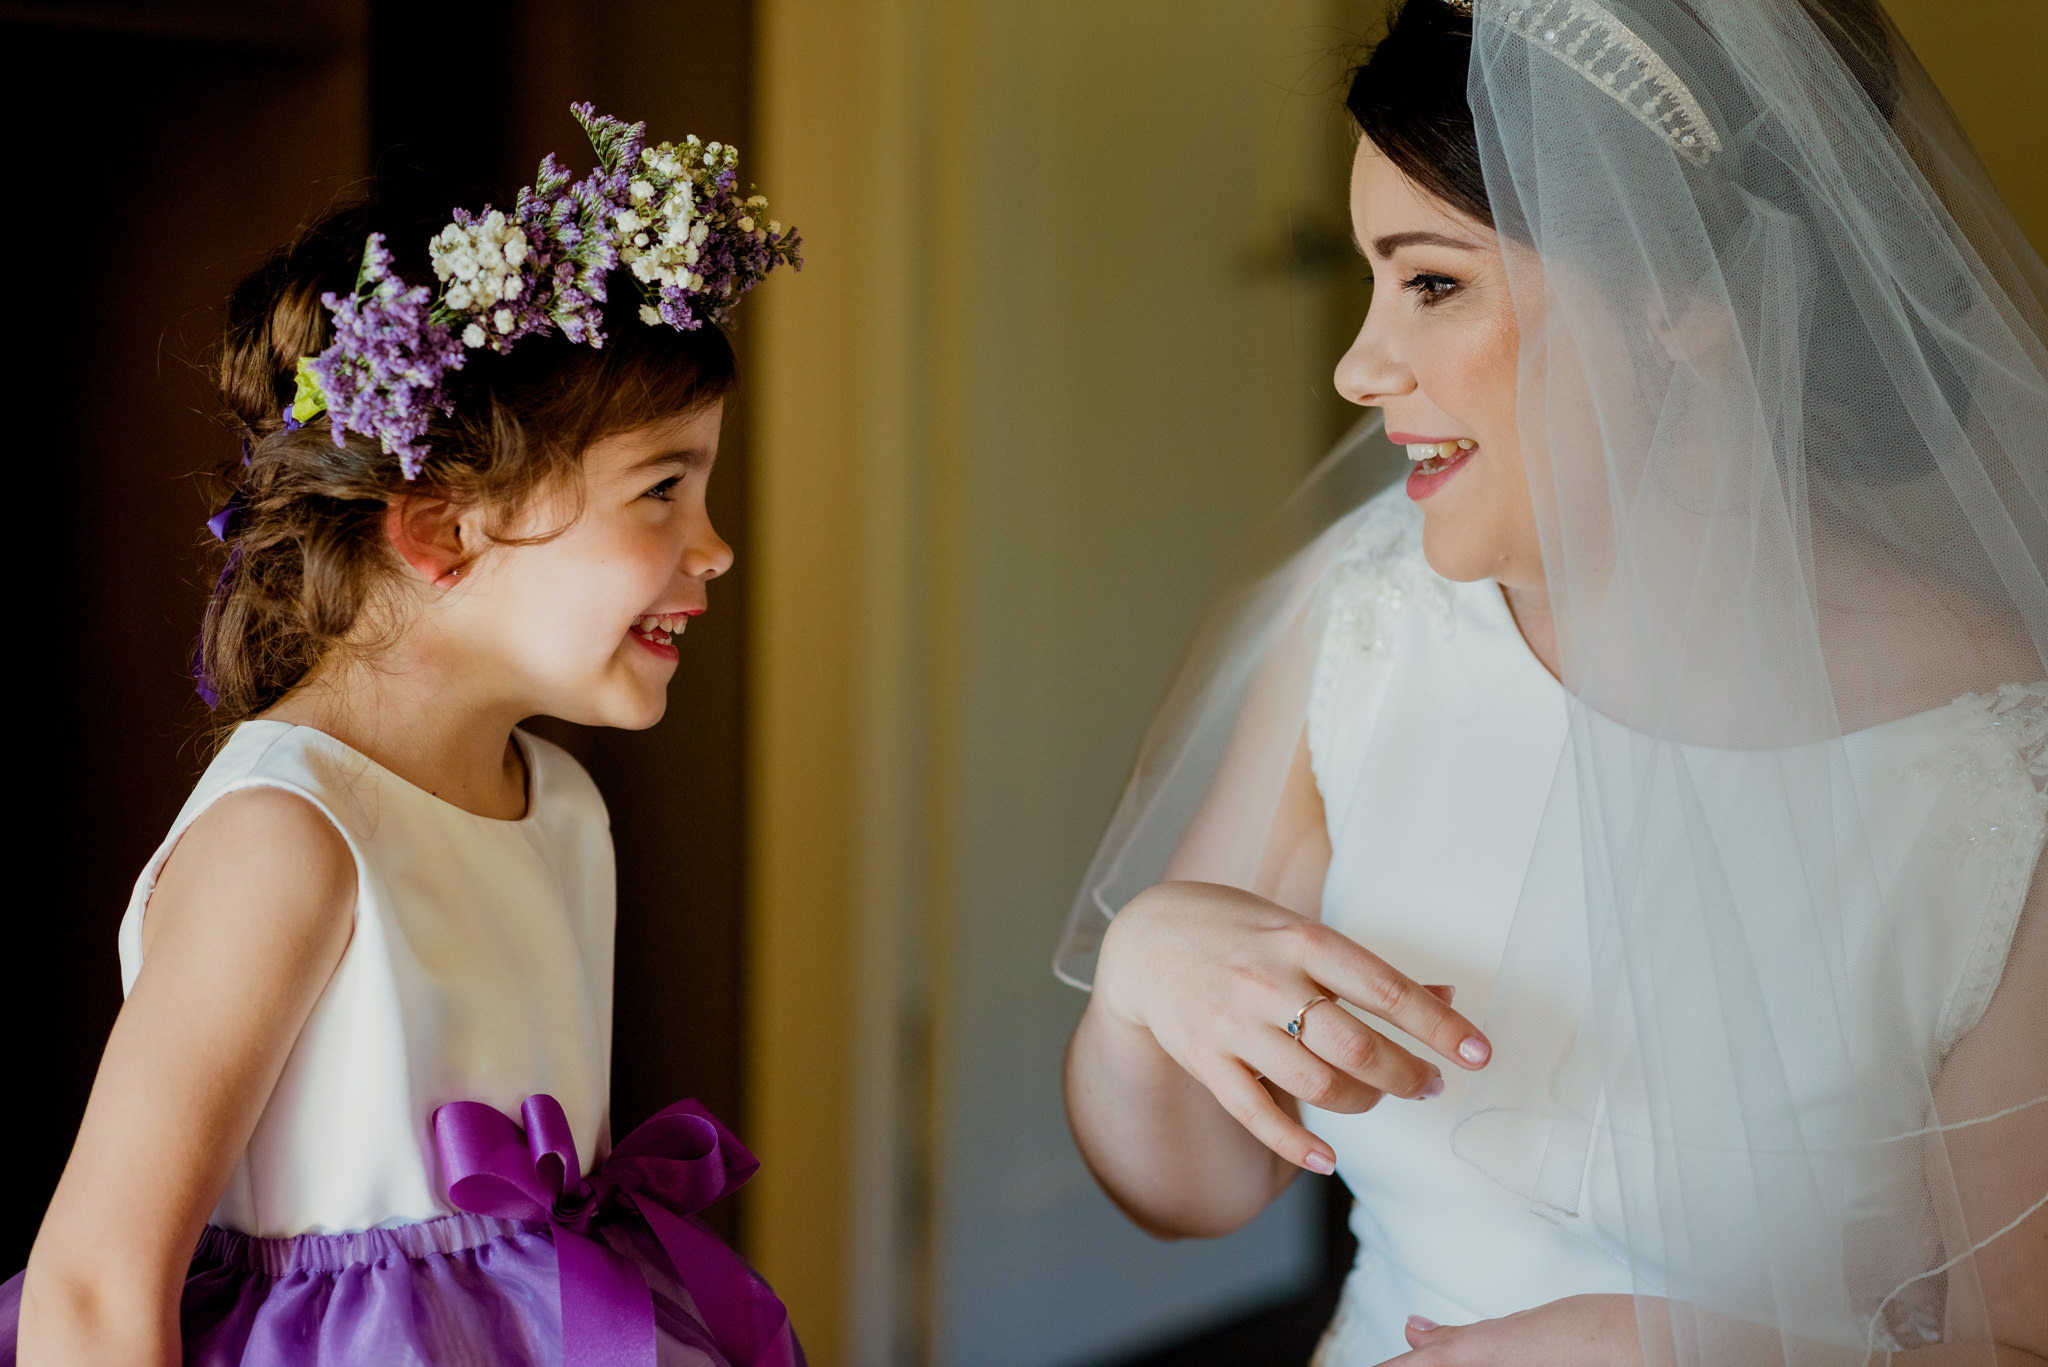 A smiling bride laughs with a young flowergirl